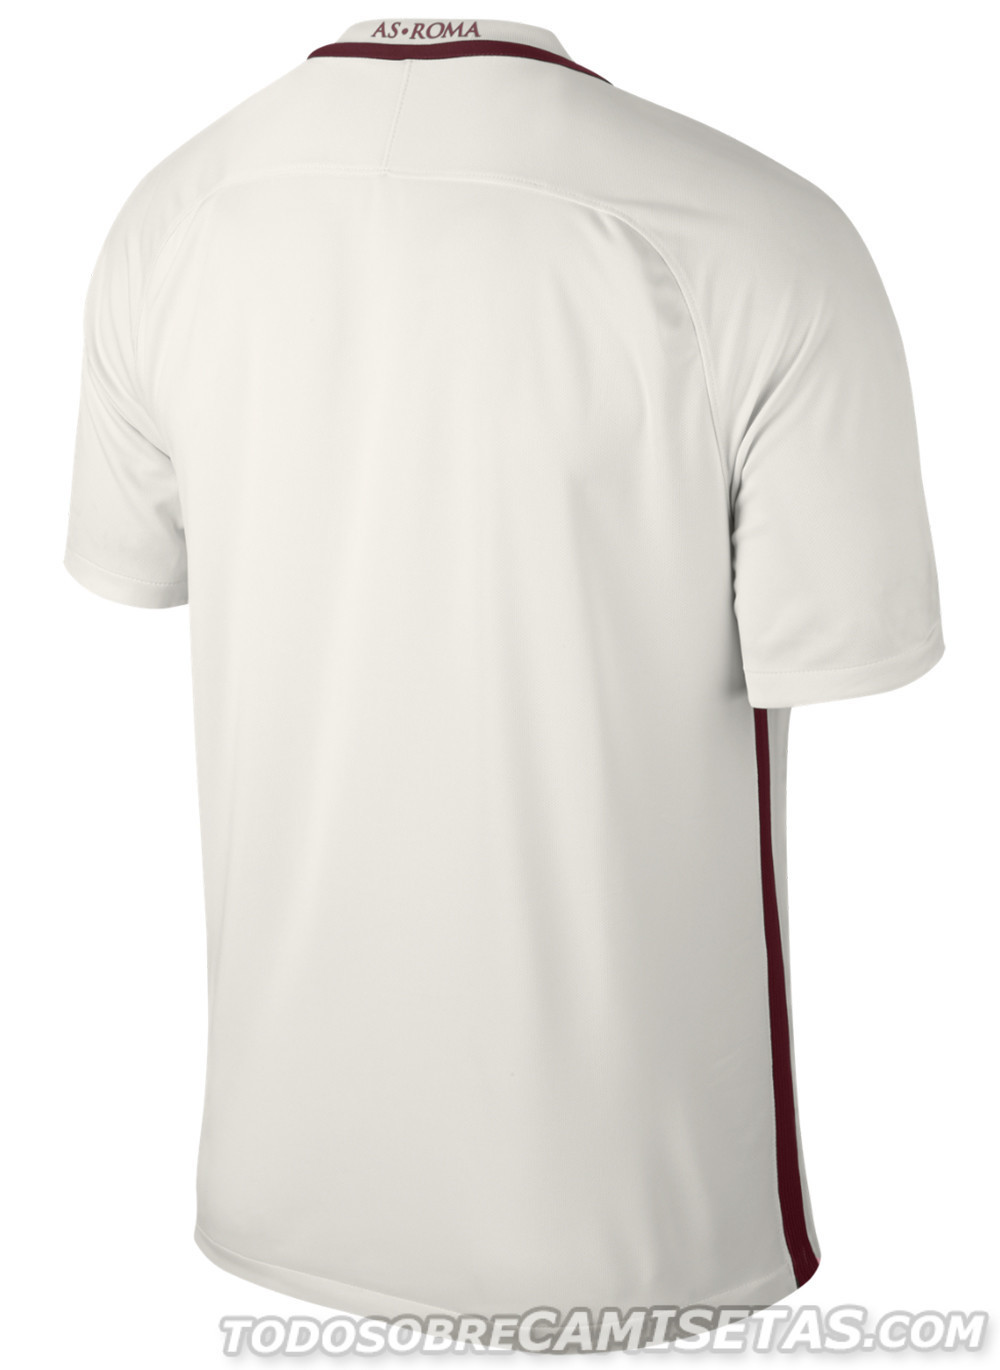 AS-Roma-2016-17-NIKE-new-away-kit-7.jpg